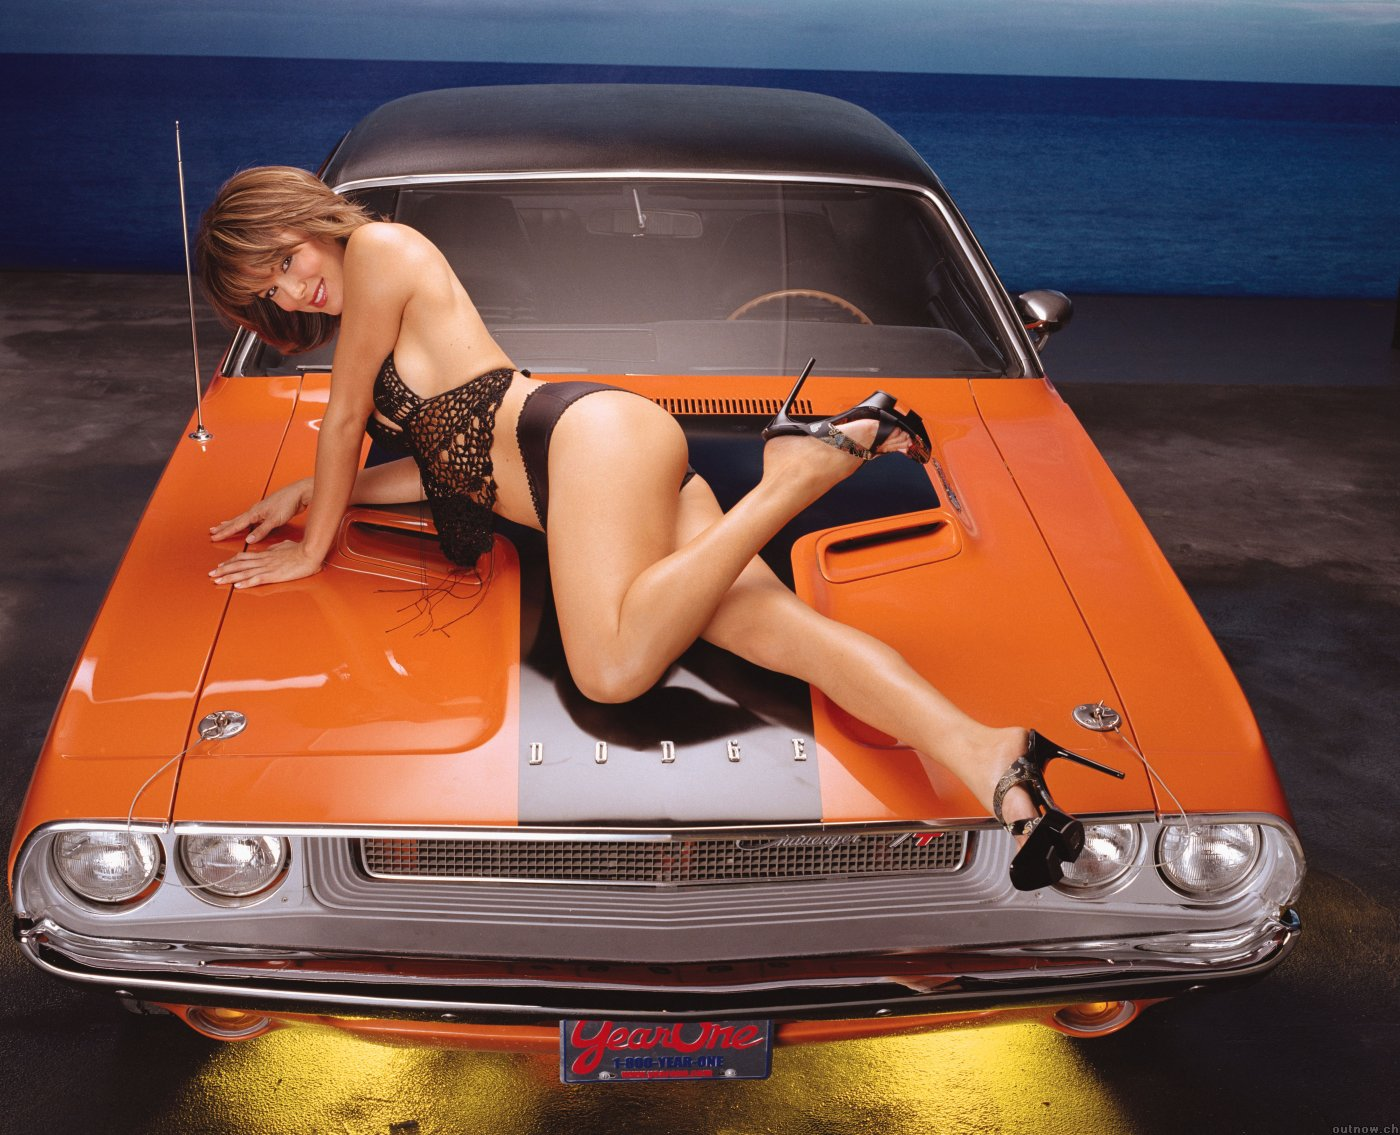 girls of fast and furious naked